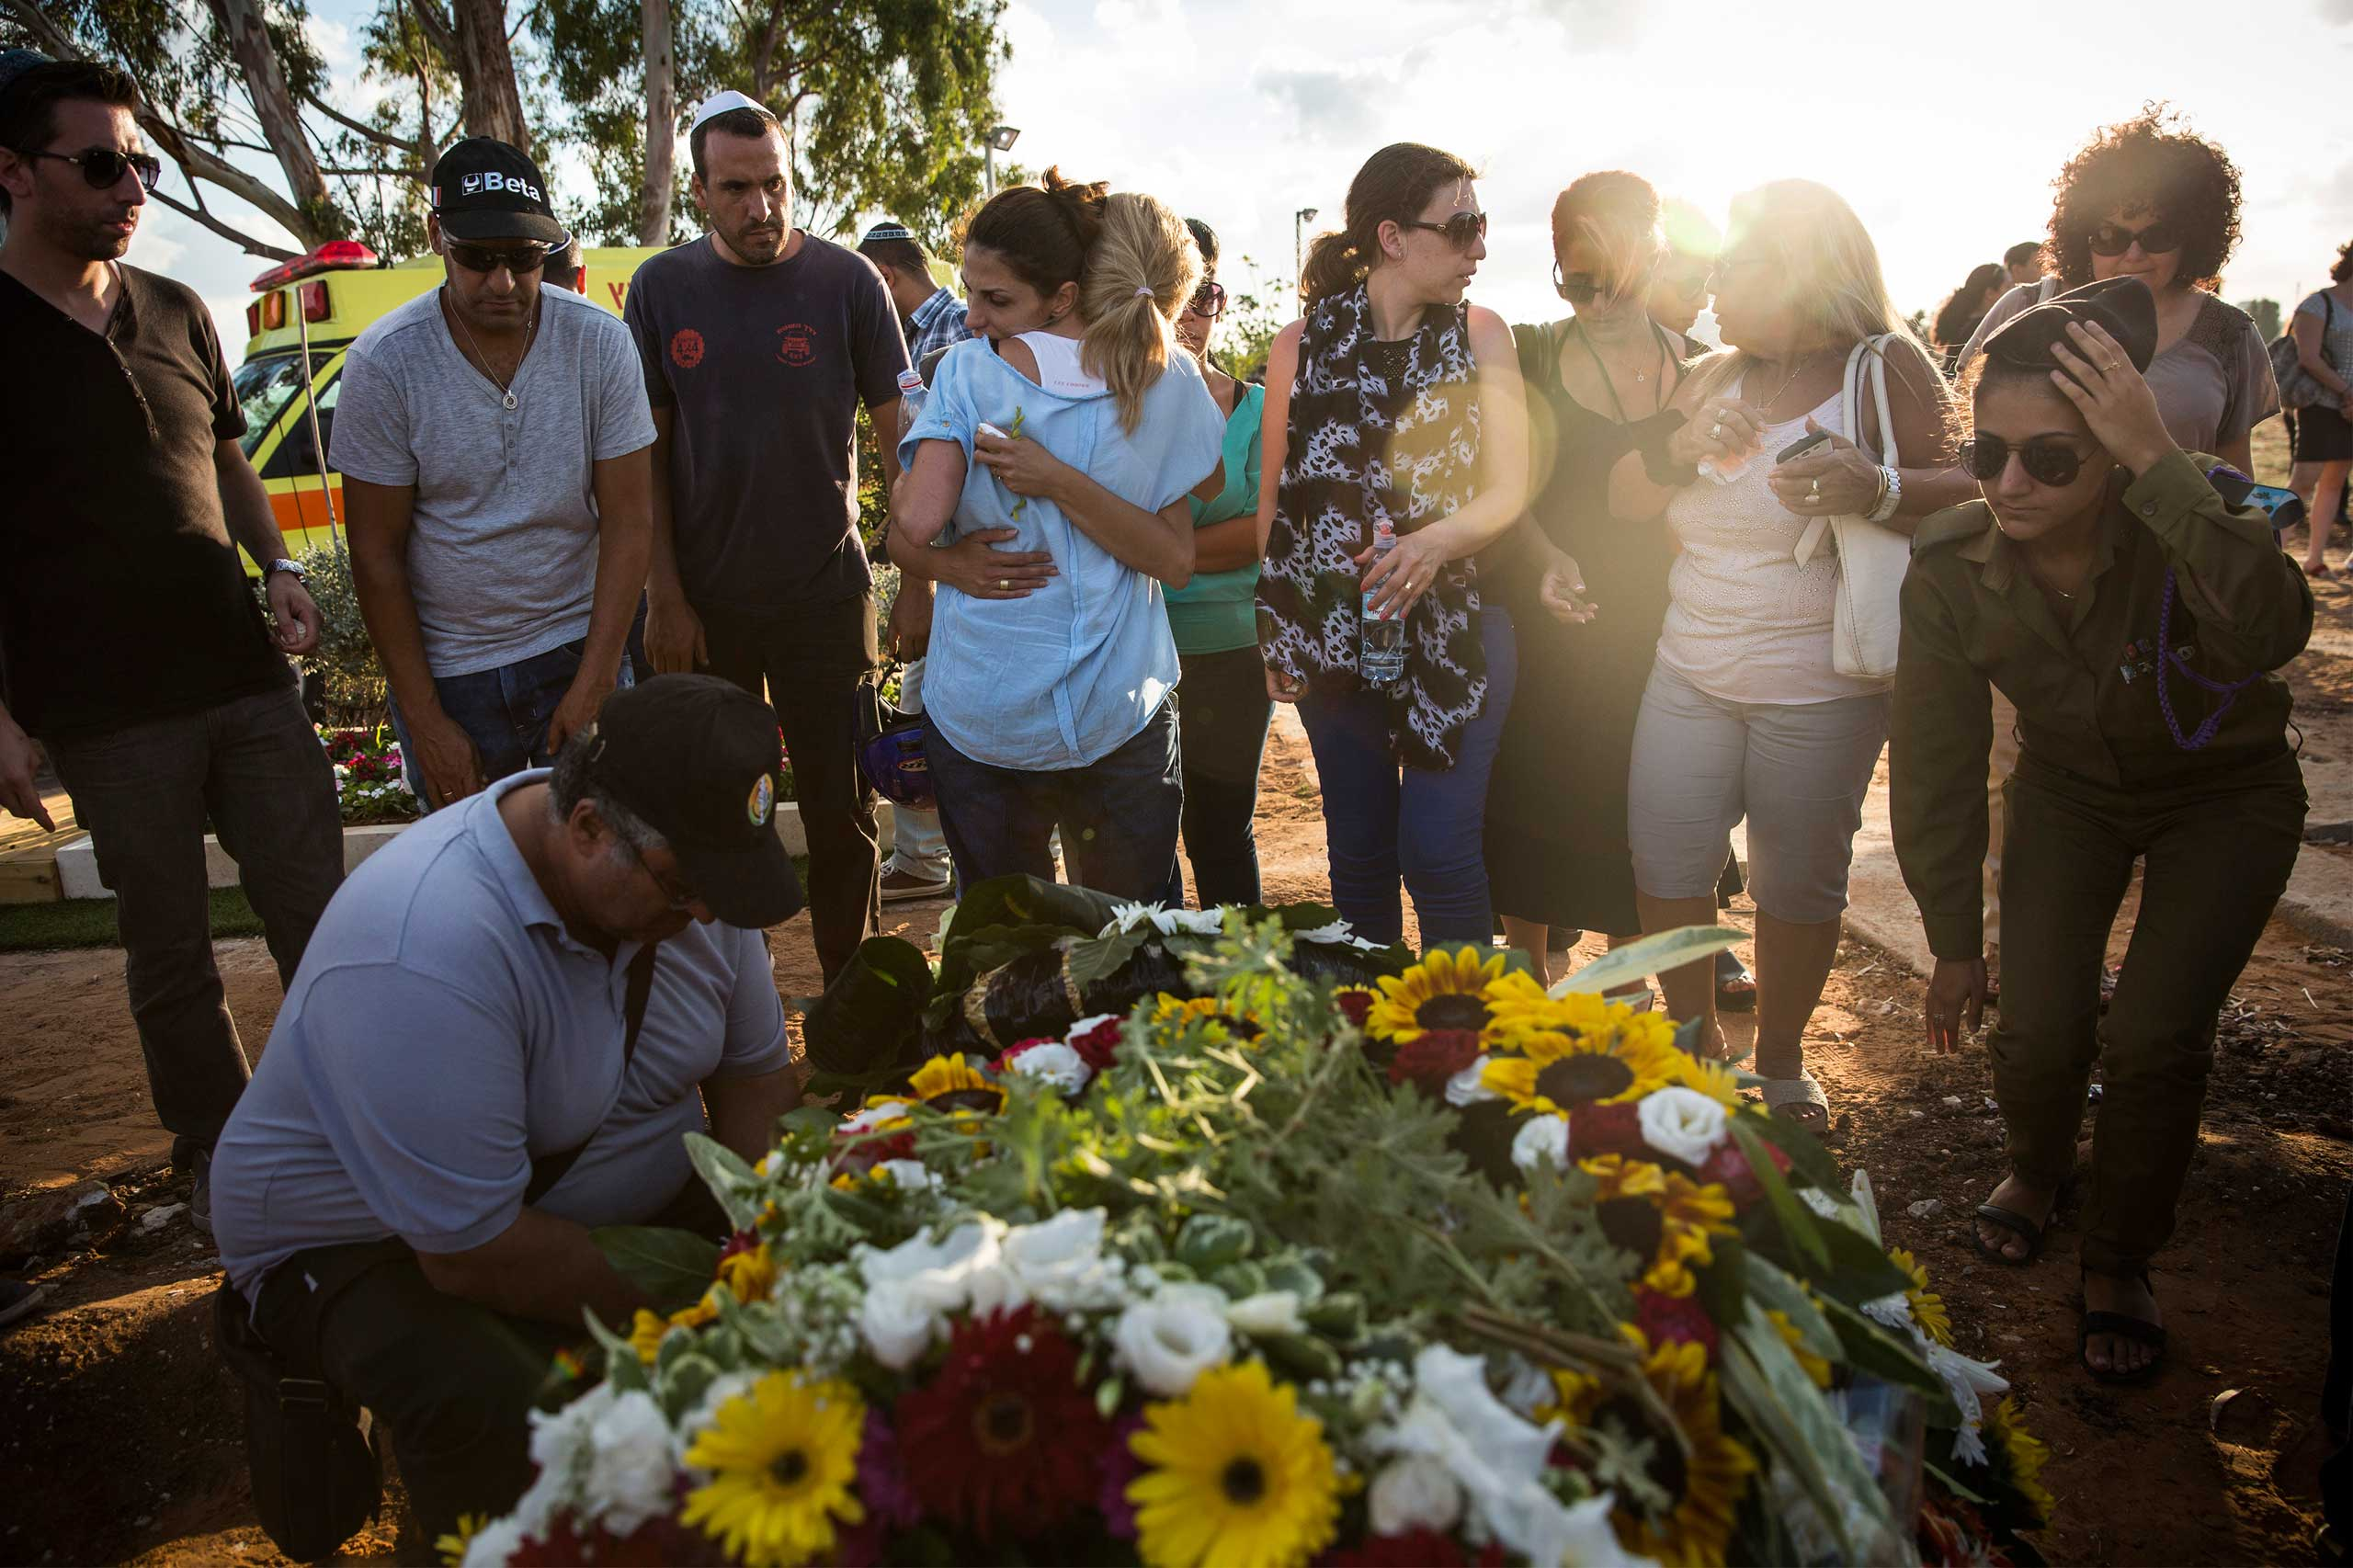 People mourn during the funeral of Dror Khenin at a cemetery in Yahud Monoson, Israel, July 16, 2014.